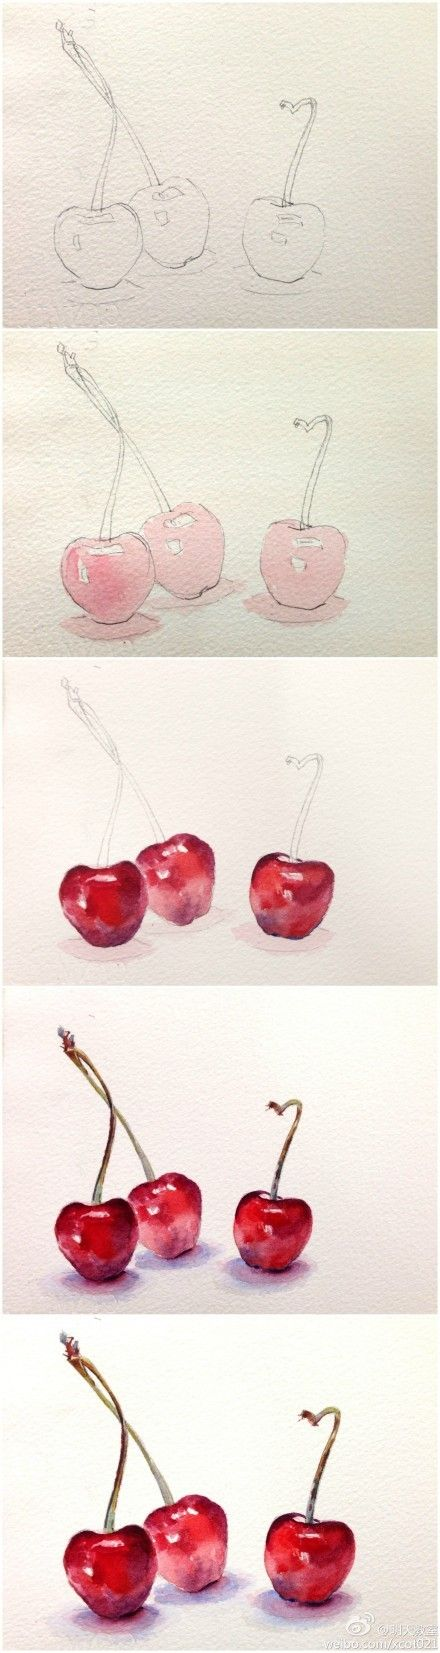 watercolor step by step cherry's                                                                                                                                                      More